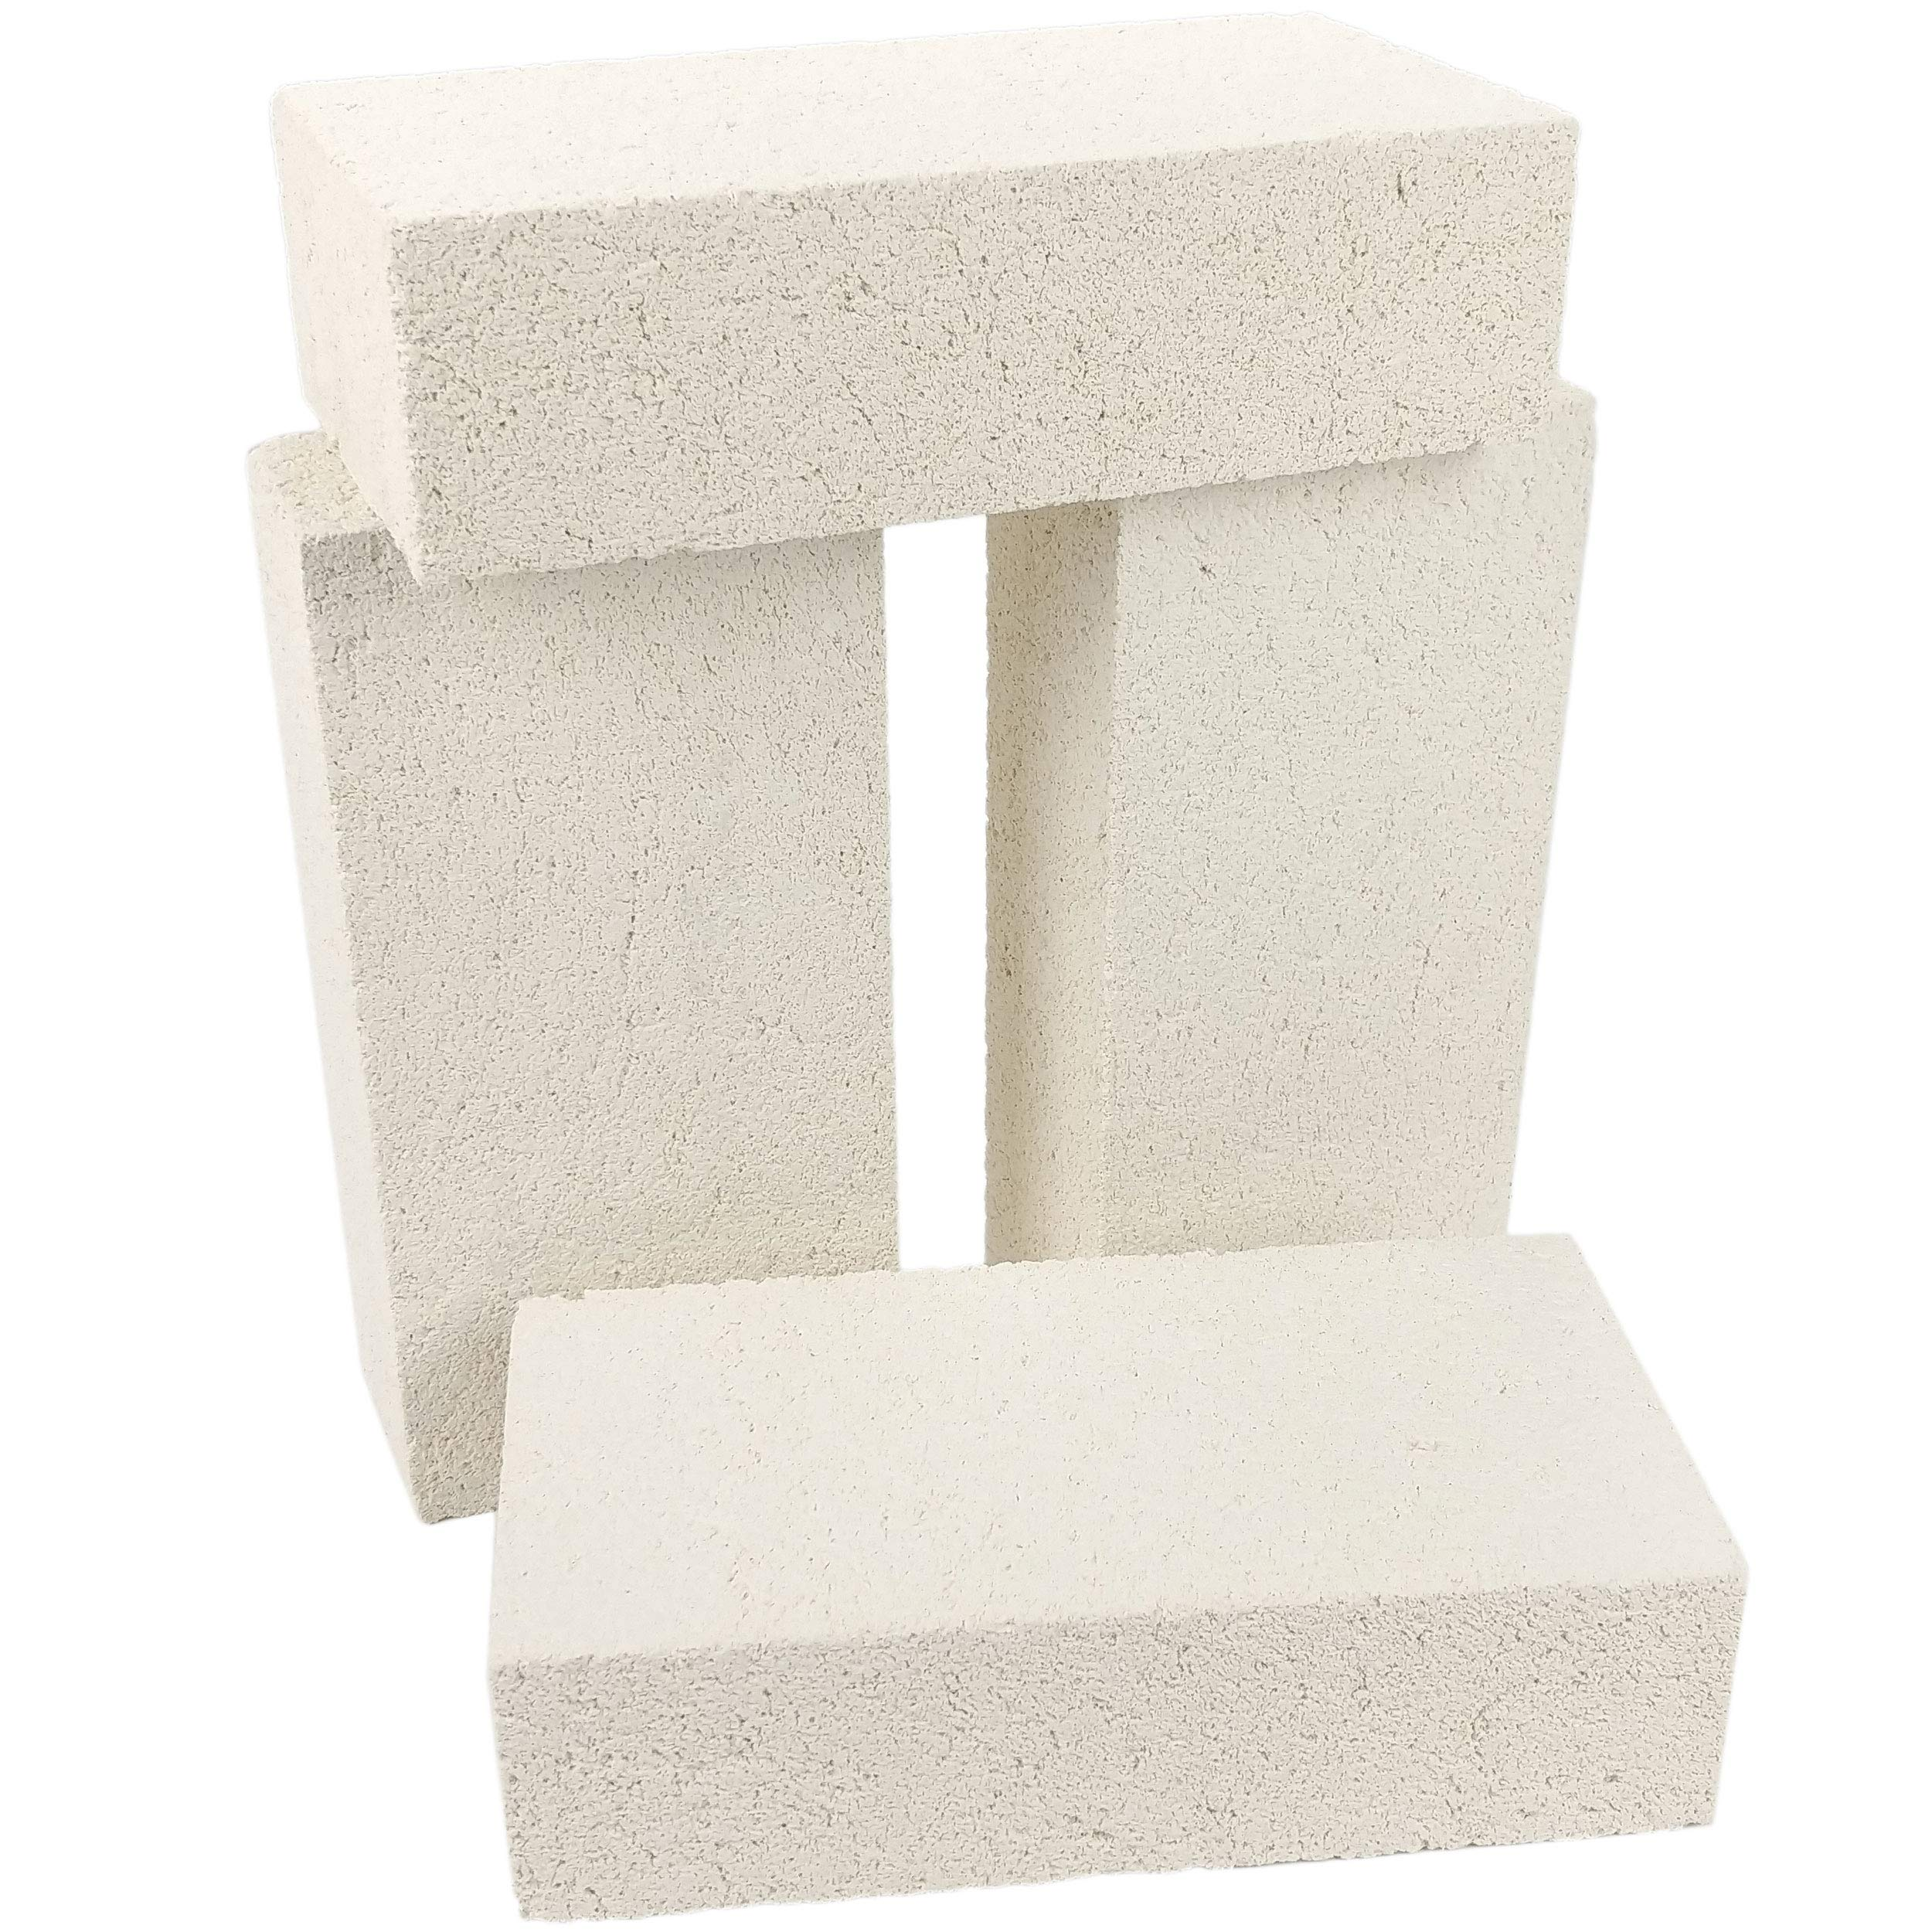 "Lynn Manufacturing Insulating Fire Brick, 2300F Rated, 4-Pack, for Kilns, Forges, Metal Clay Firing, Jewelry Soldering, 9"" x 4.5"" x 2.5"", K-23, 3123R"